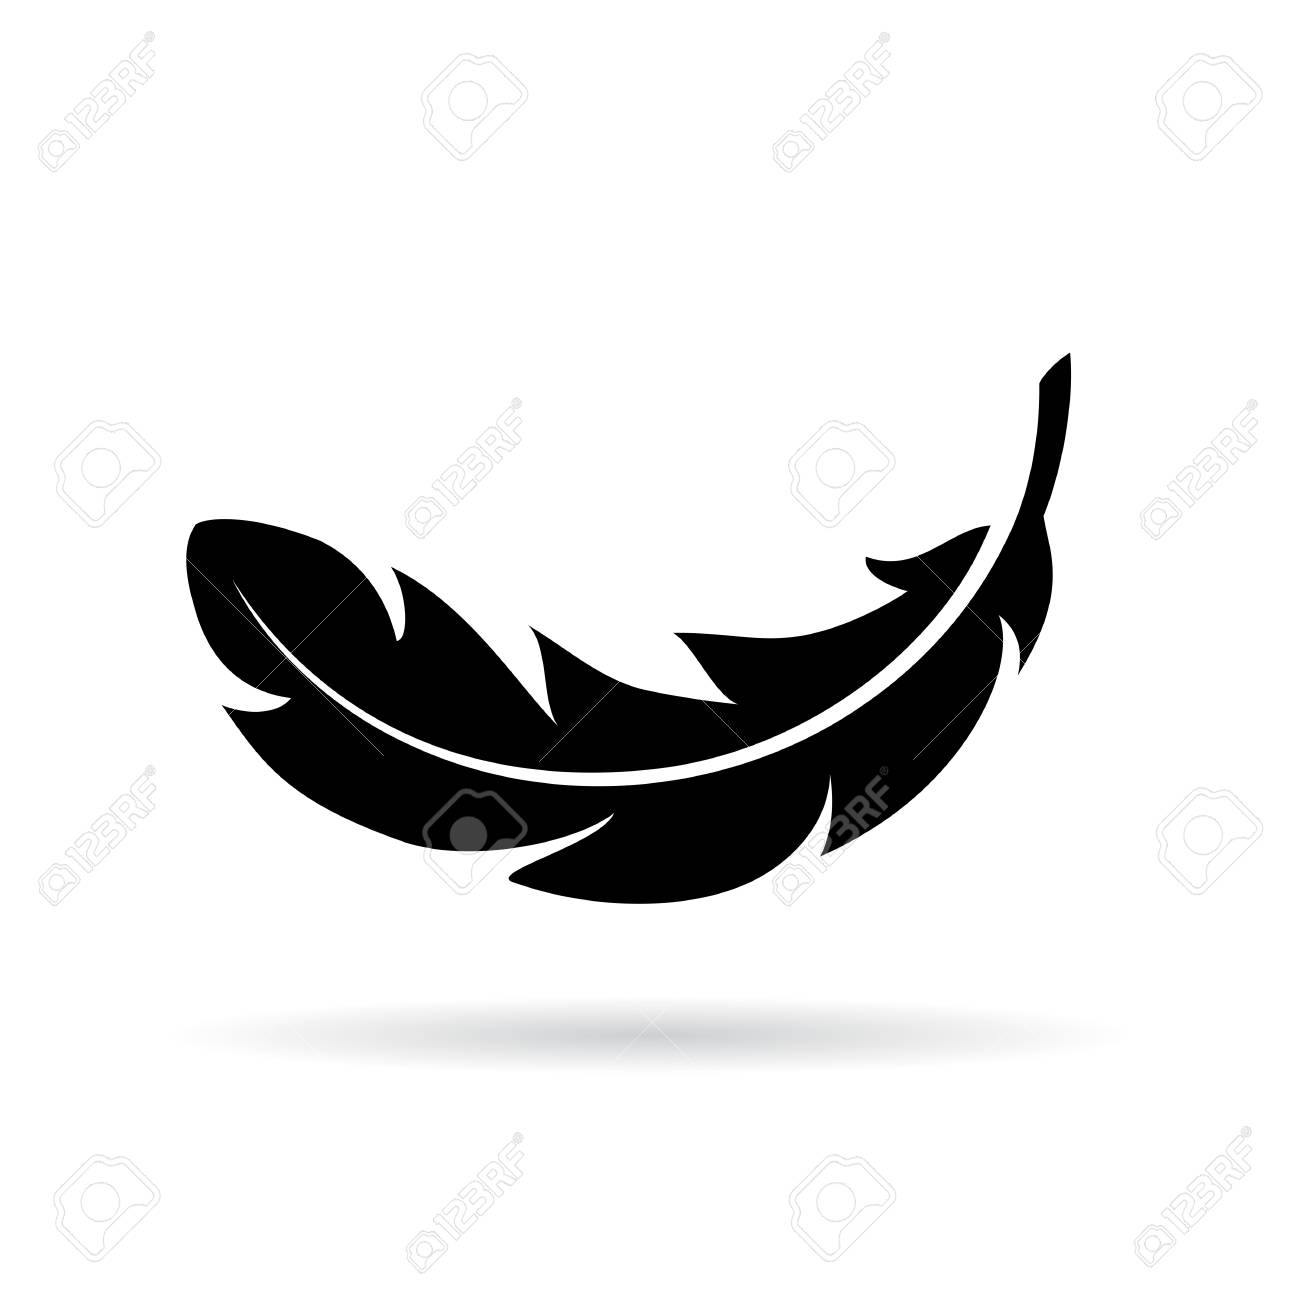 Feather vector icon - 89089126